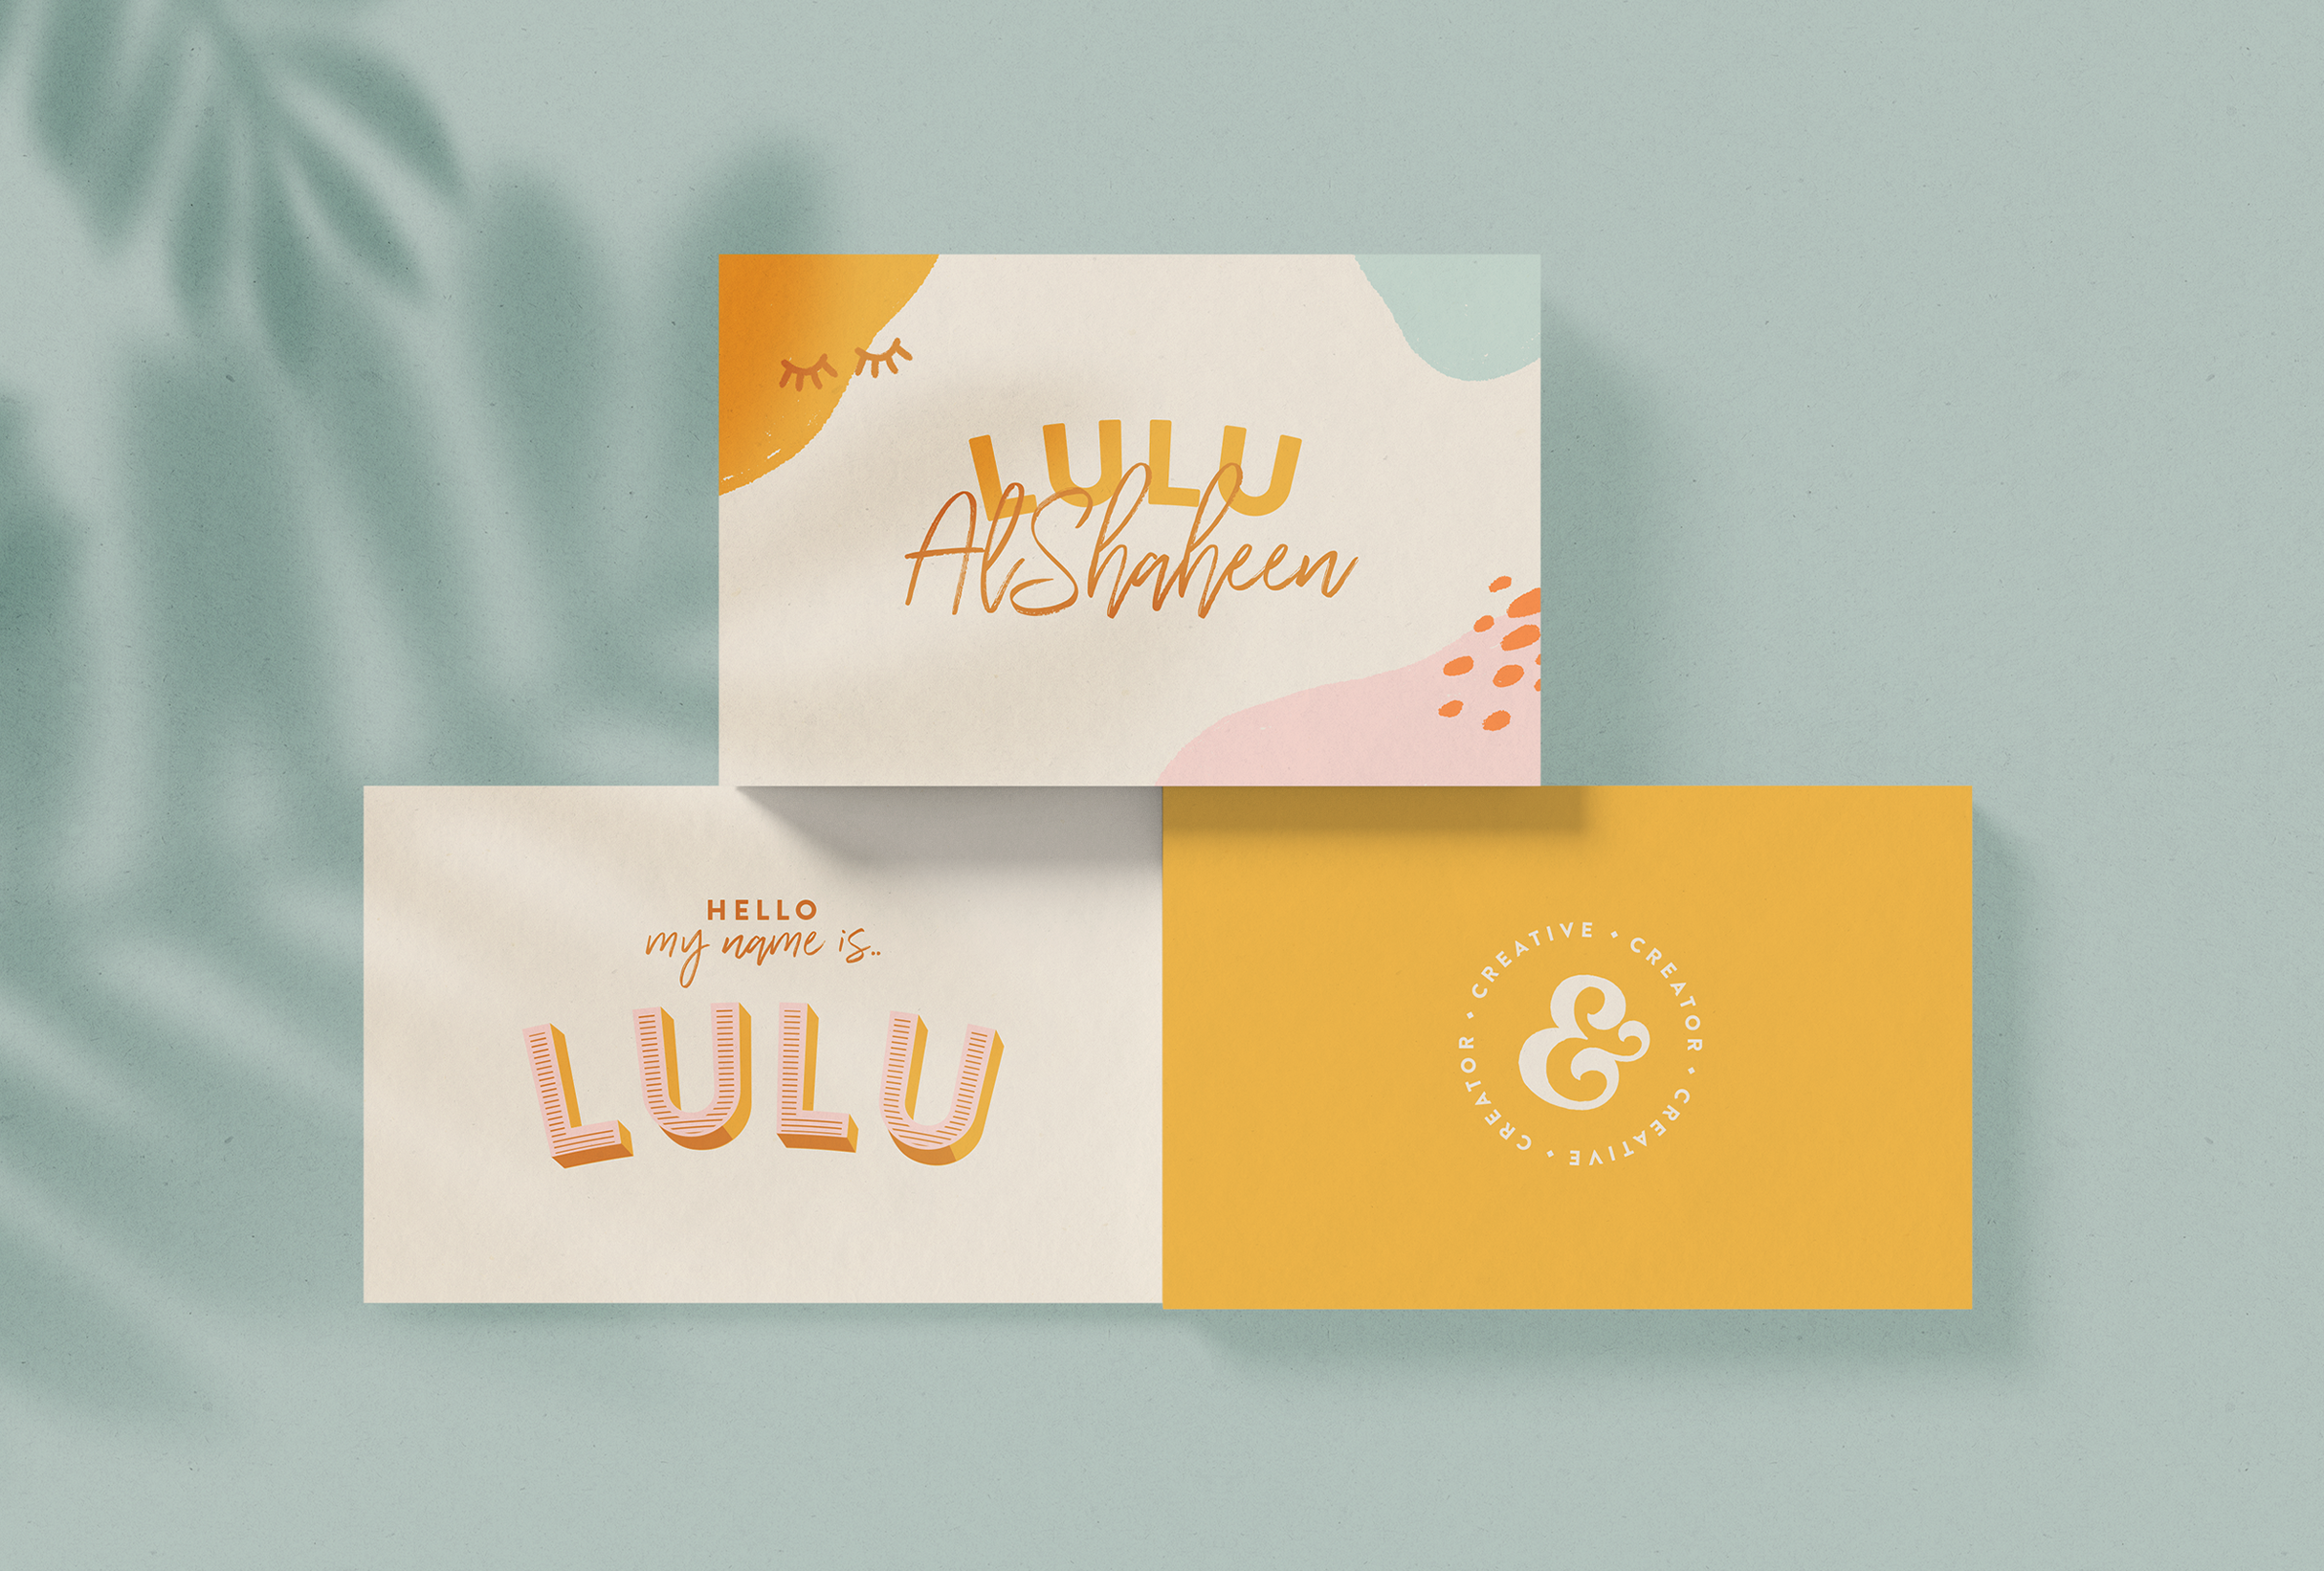 Lulu AlShaheen business card